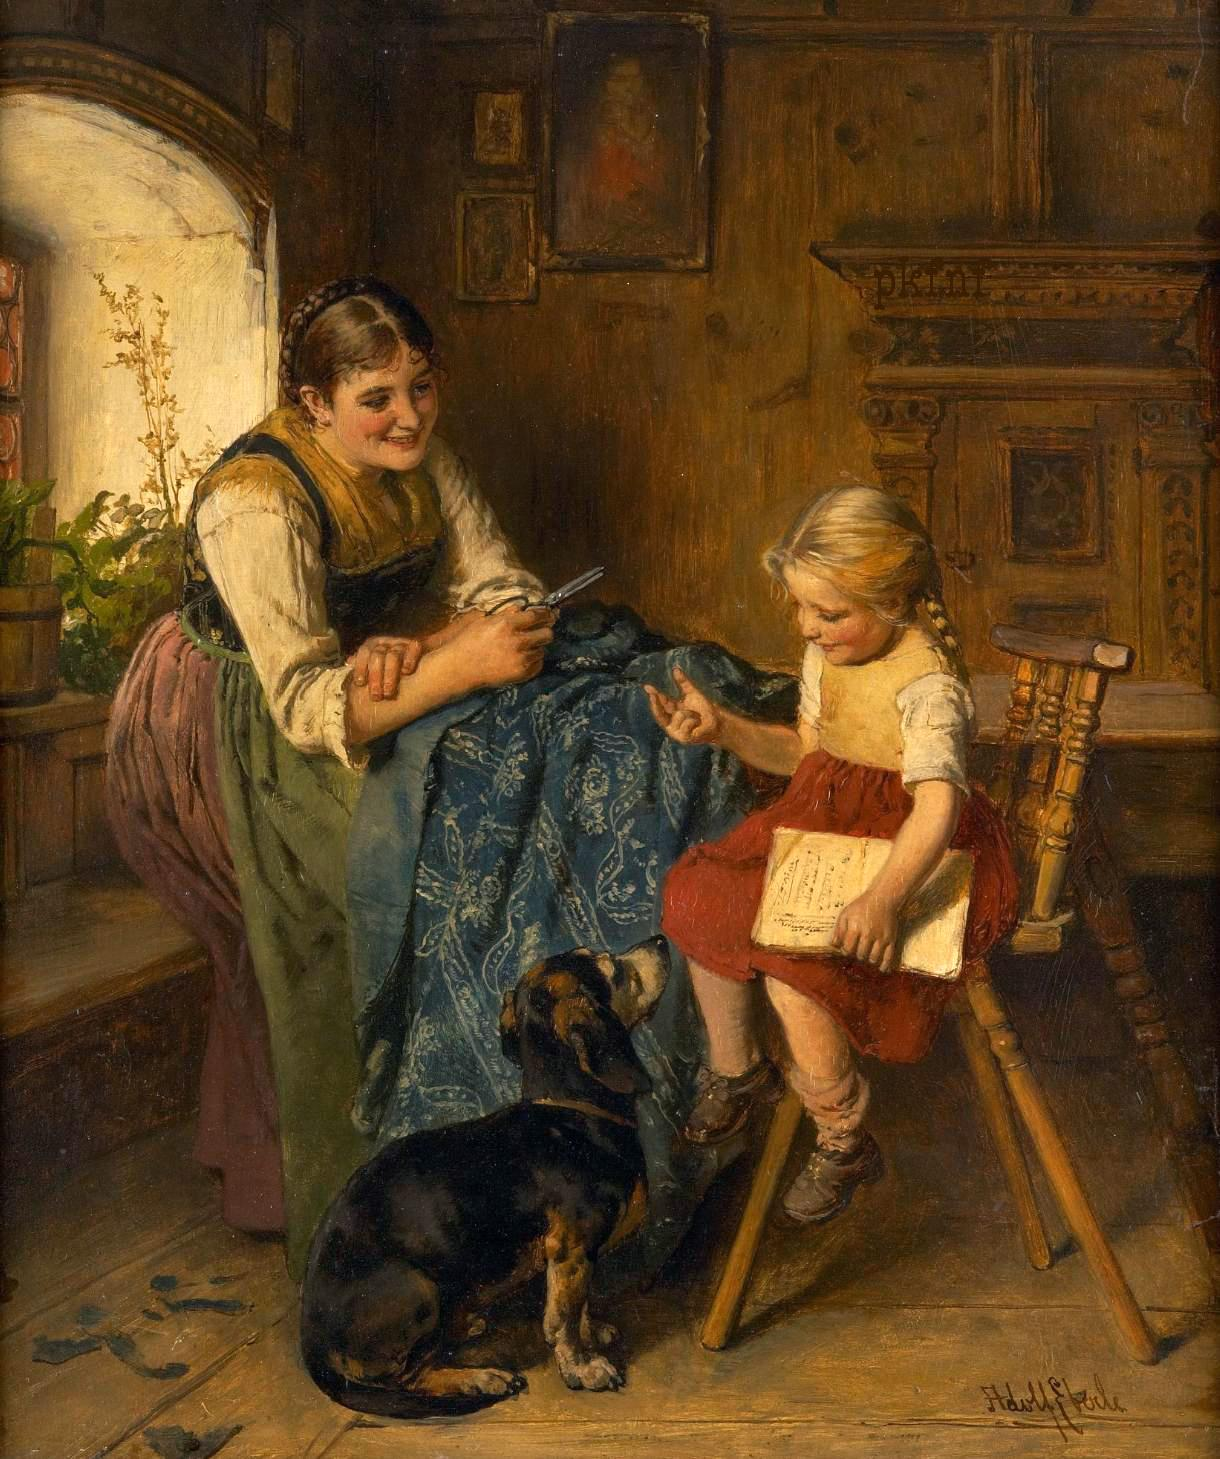 Family scene with young mother, child and dog